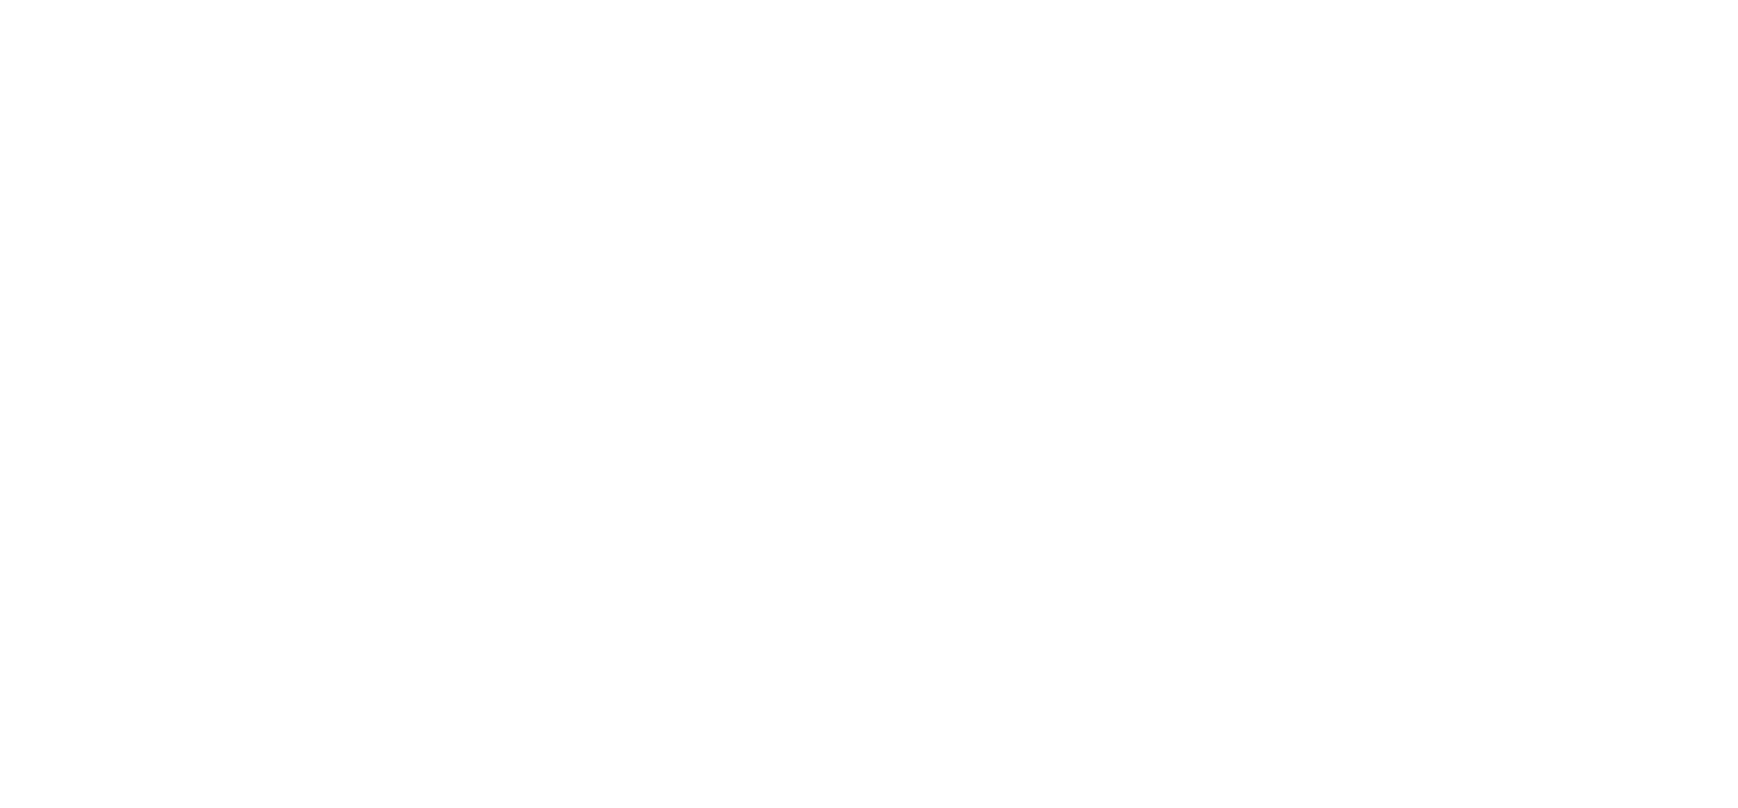 Fidelity Building Inspections